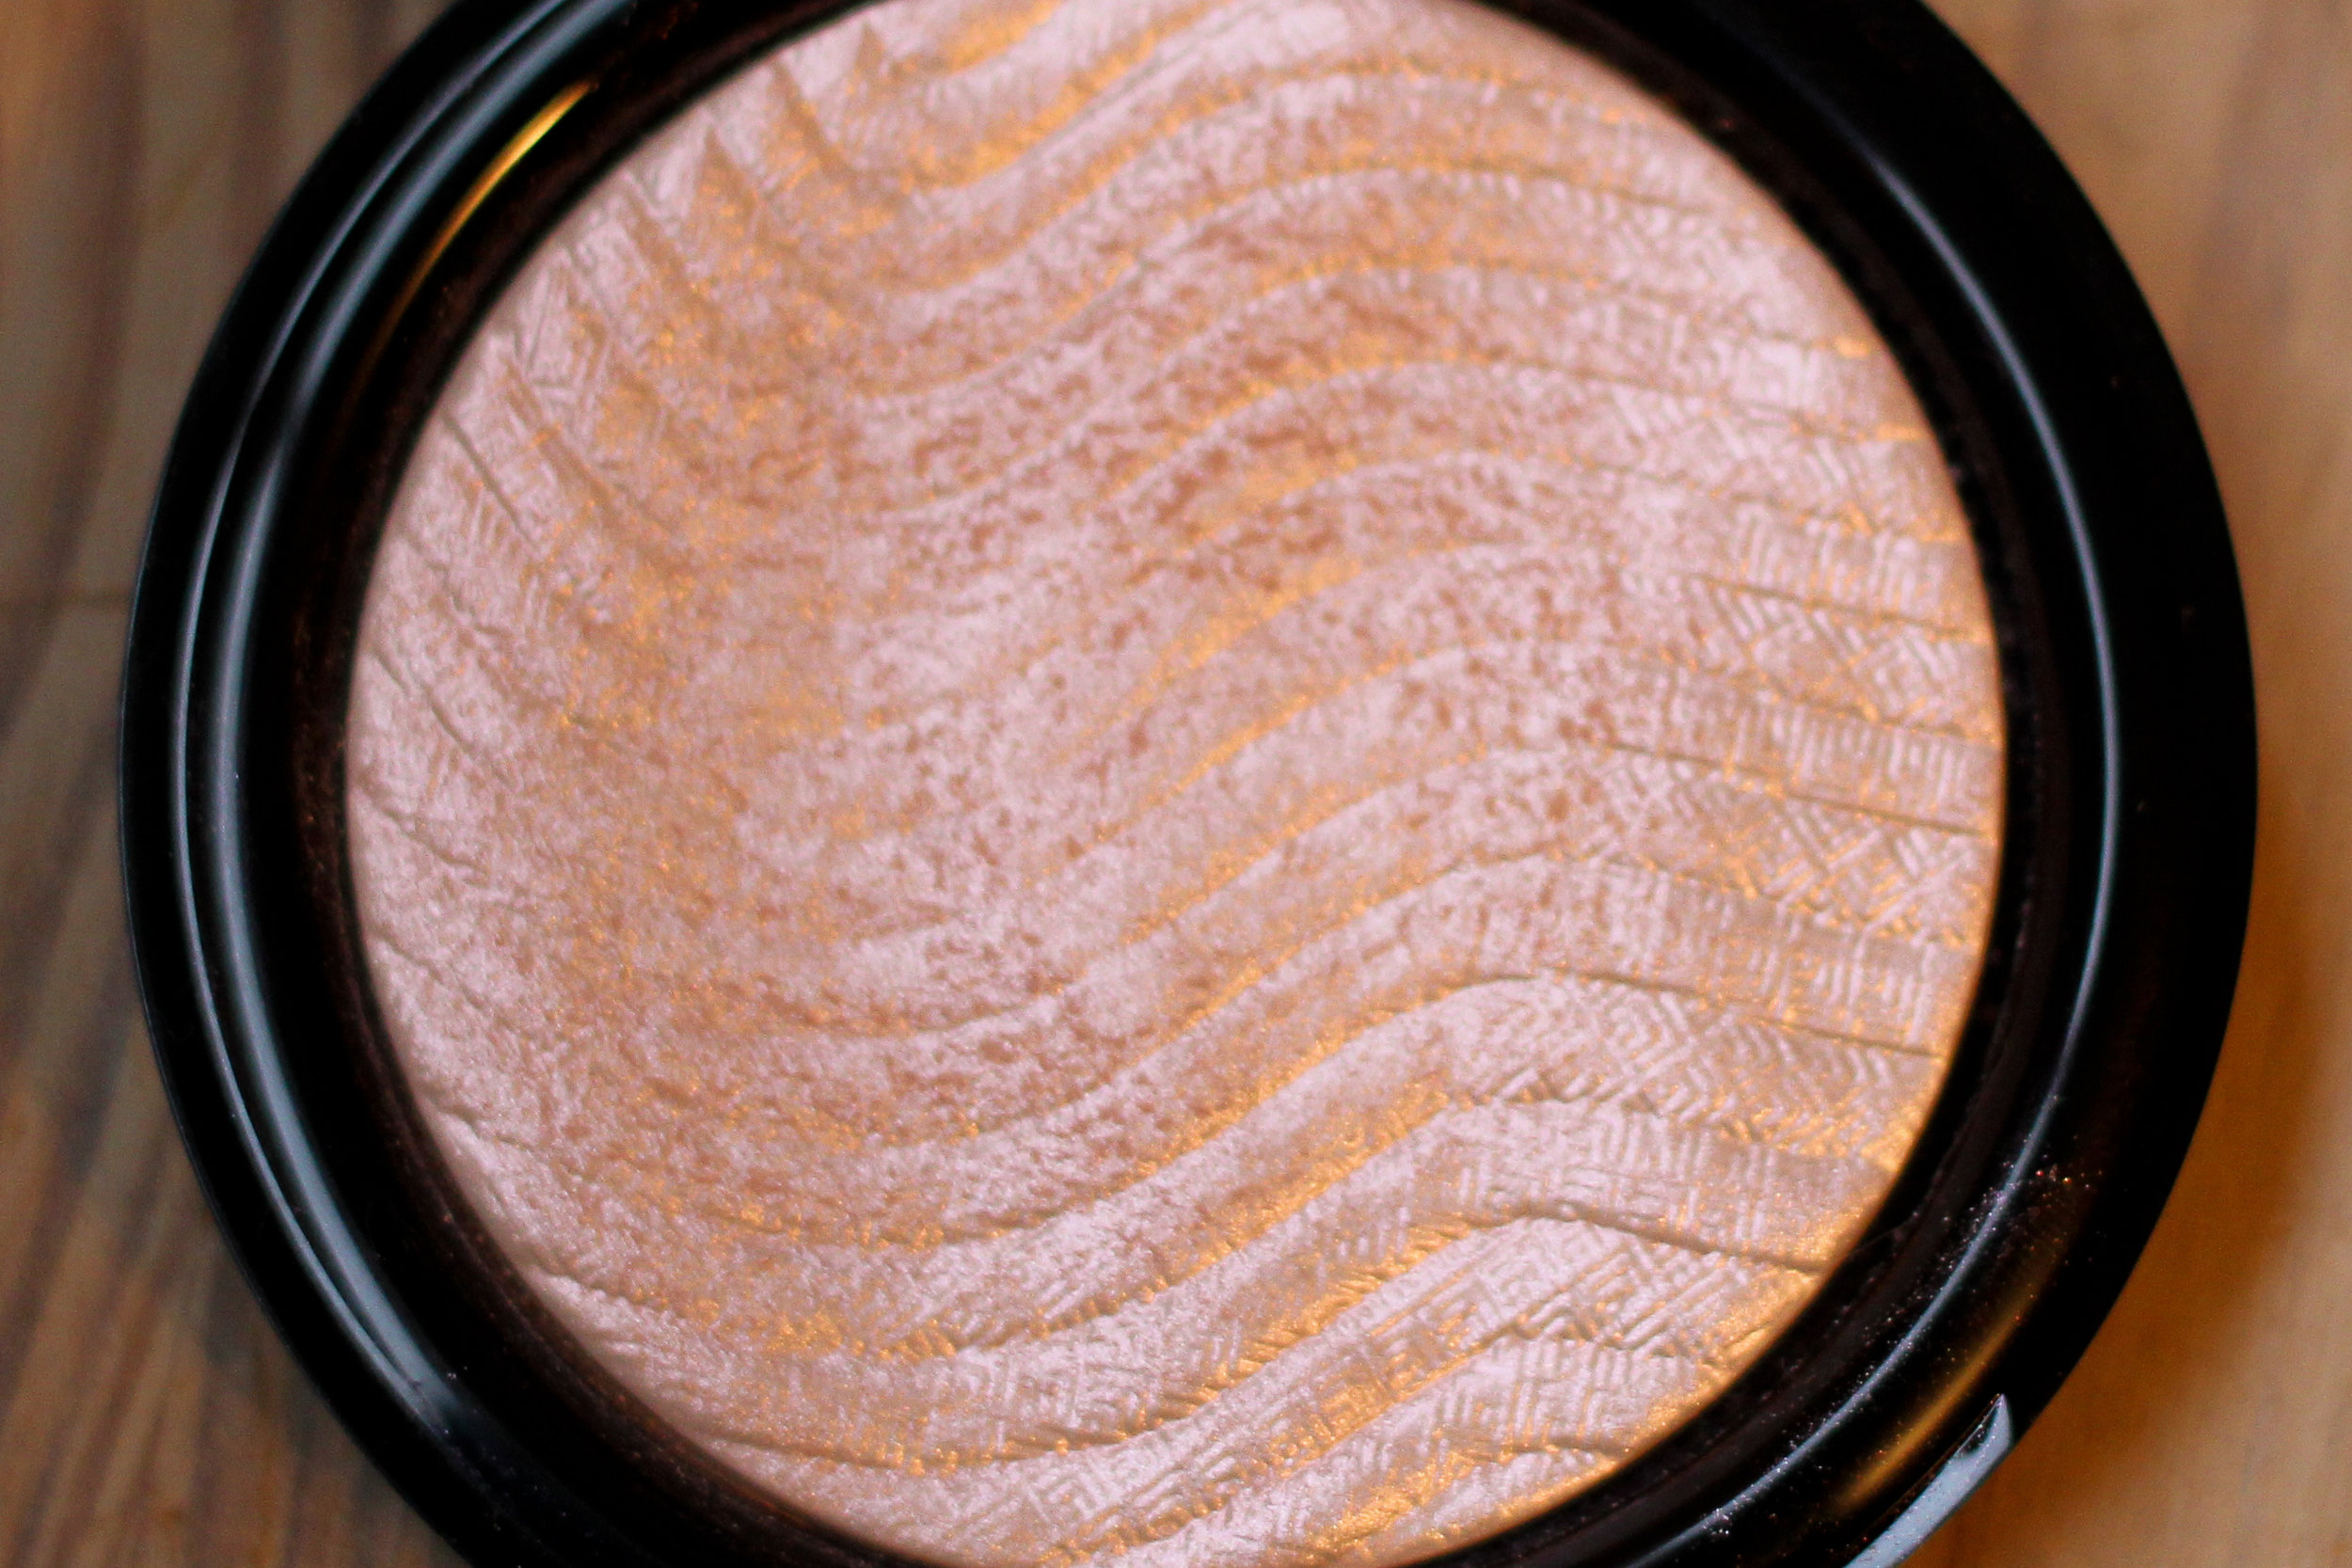 Make Up For Ever Pro Light Fusion Undetectable Luminizer in 01.